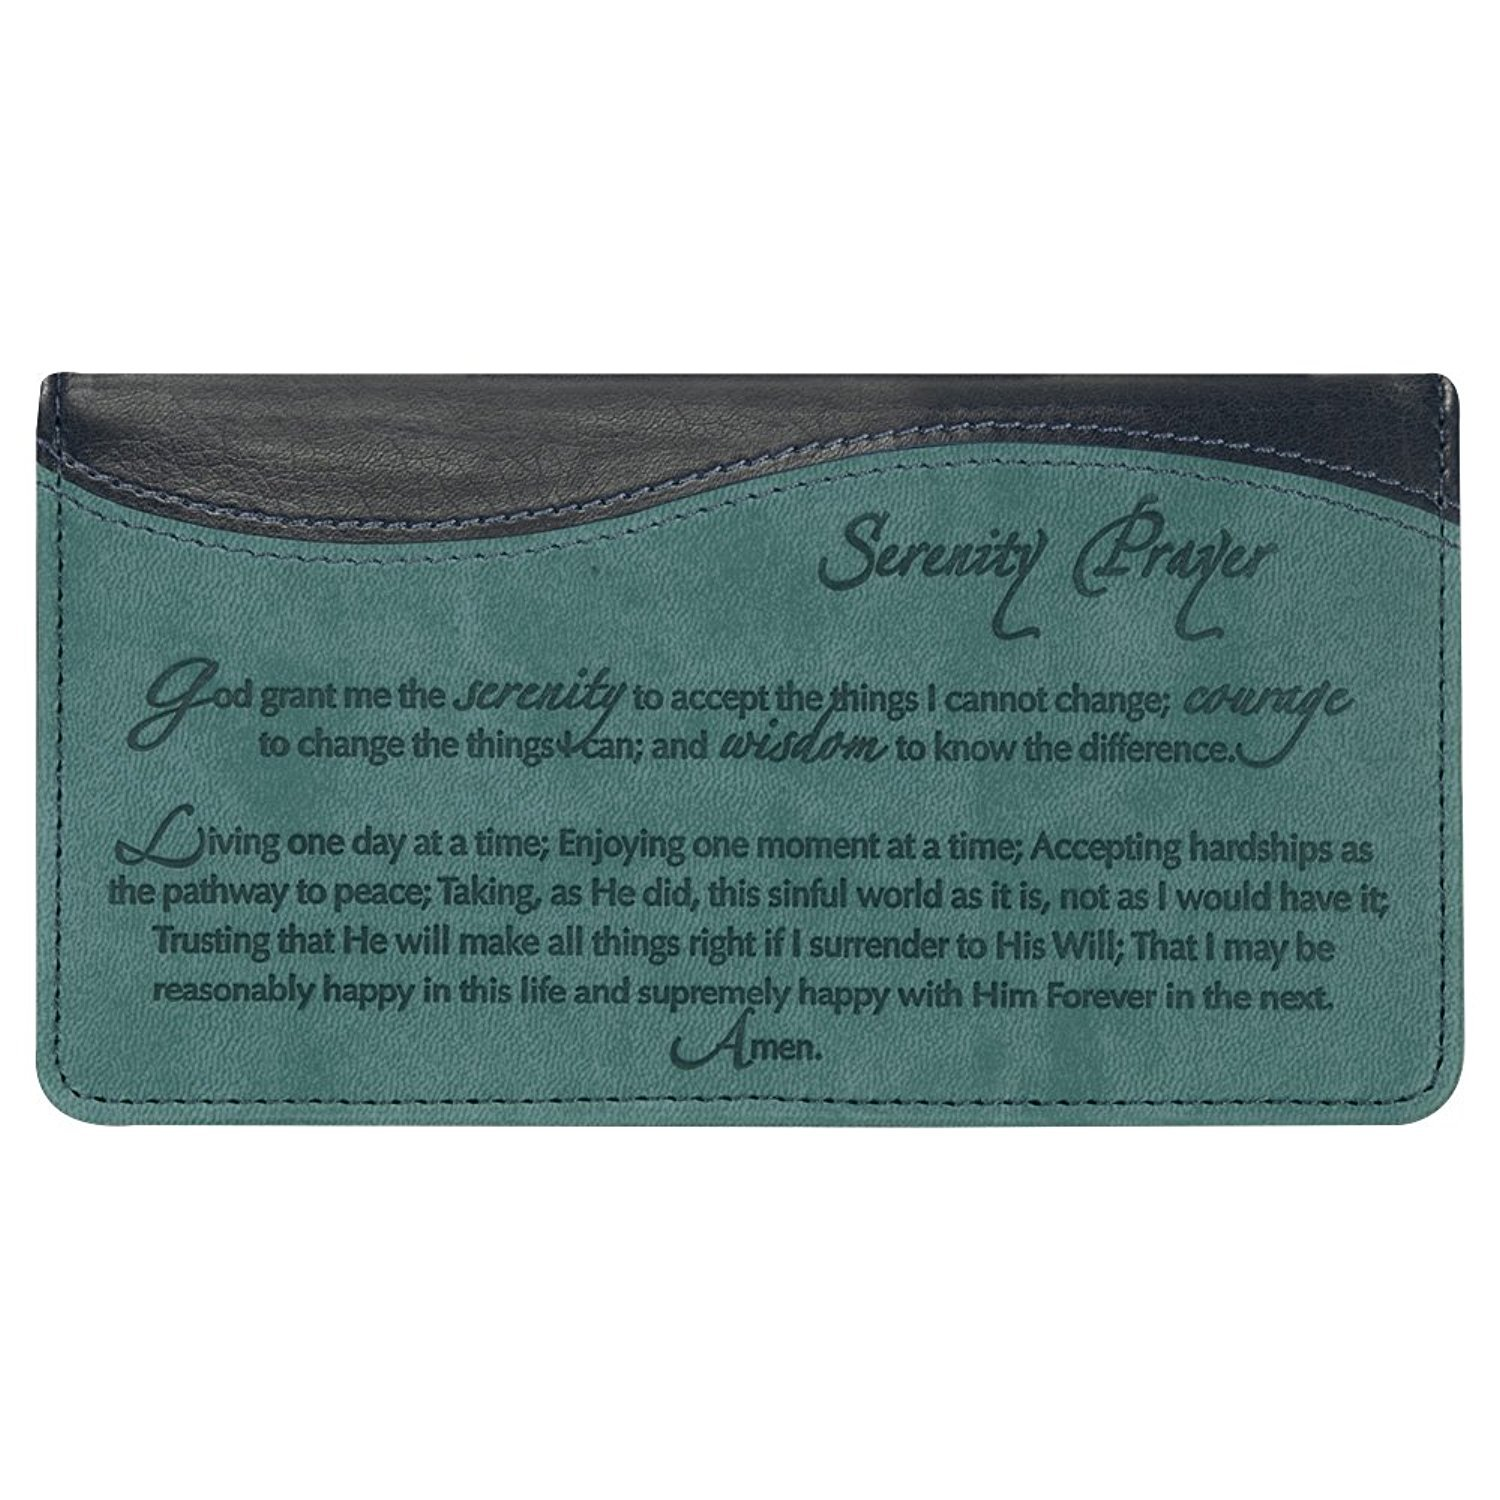 Serenity Prayer Checkbook Cover CHB013